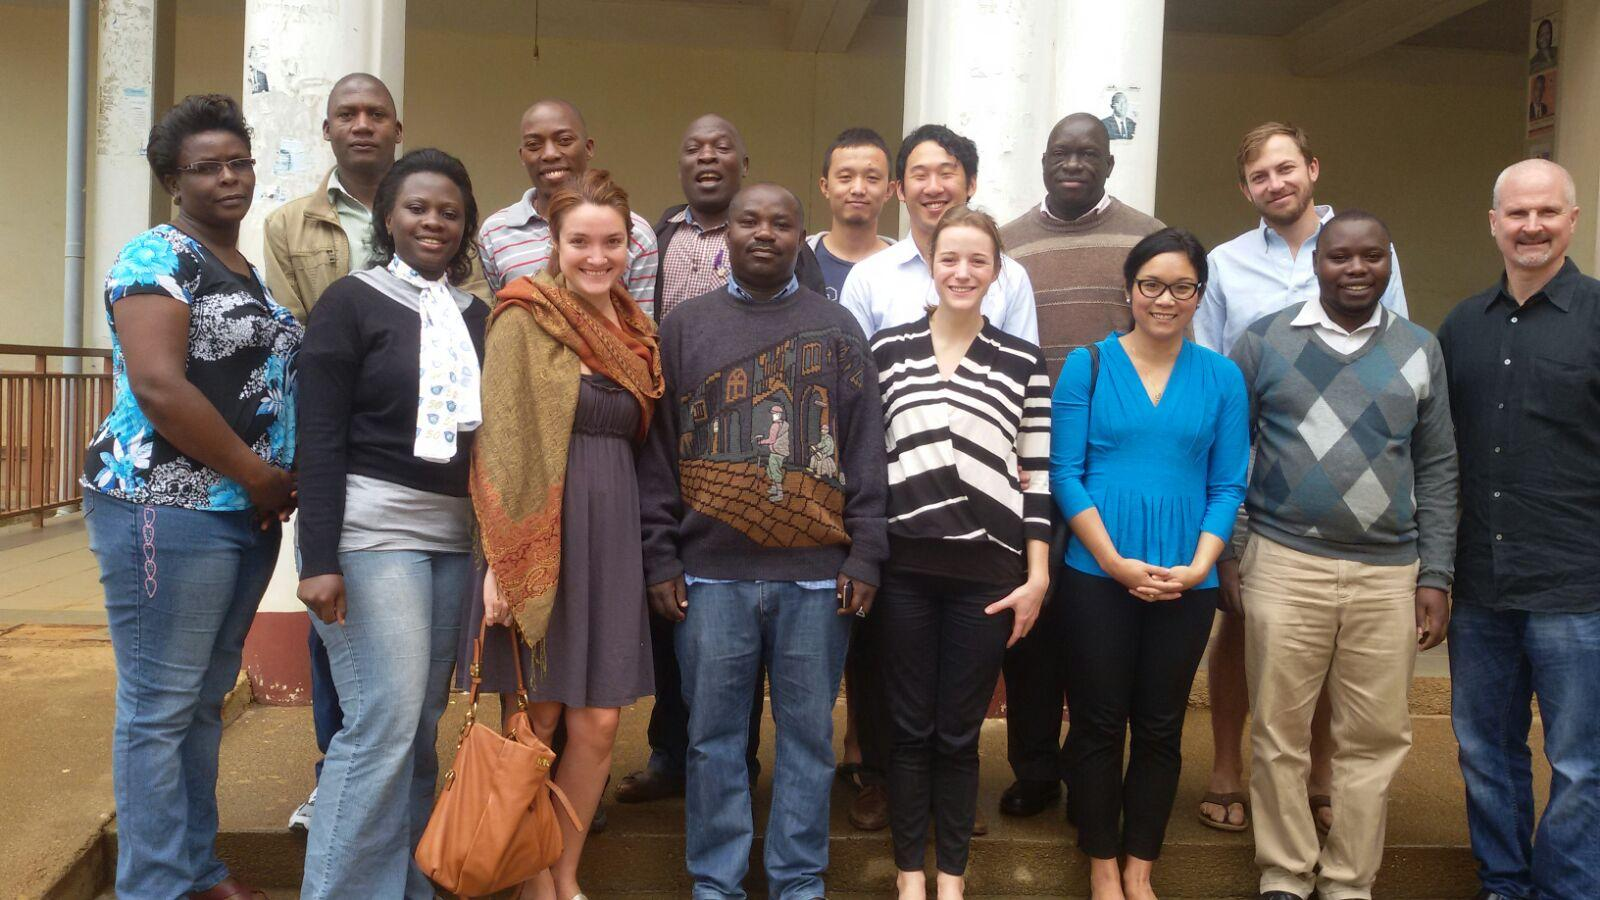 Darden students and faculty joined students and faculty at the Institute of Management Sciences at Mbarara University of Science and Technology in Mbarara, Uganda. (Photo provided by Aldea Meary-Miller)